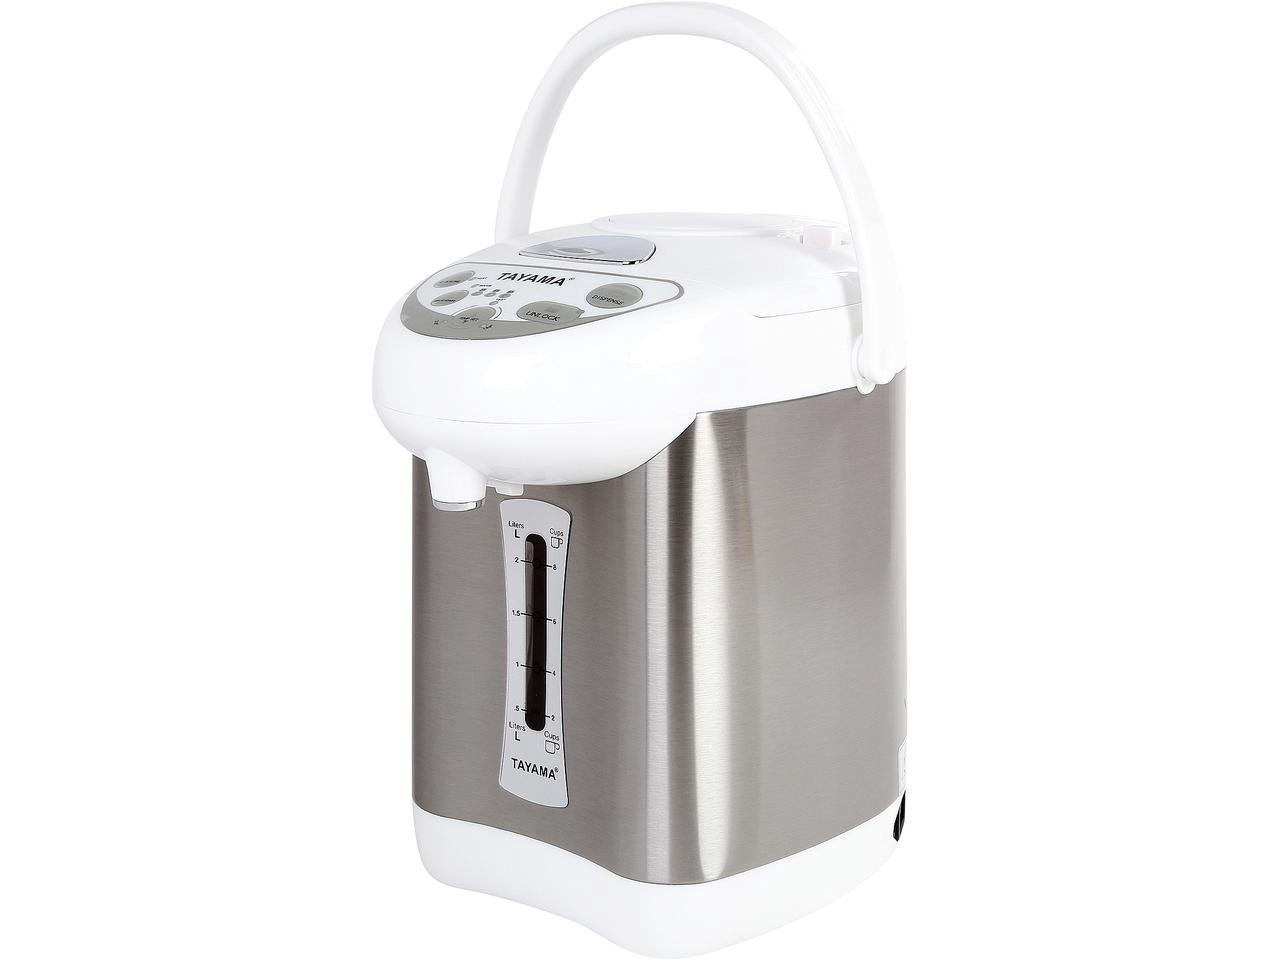 Tayama AX-300 Electric Thermo Pot, 2.8 L, White by TAYAMA   B01FKSGINY